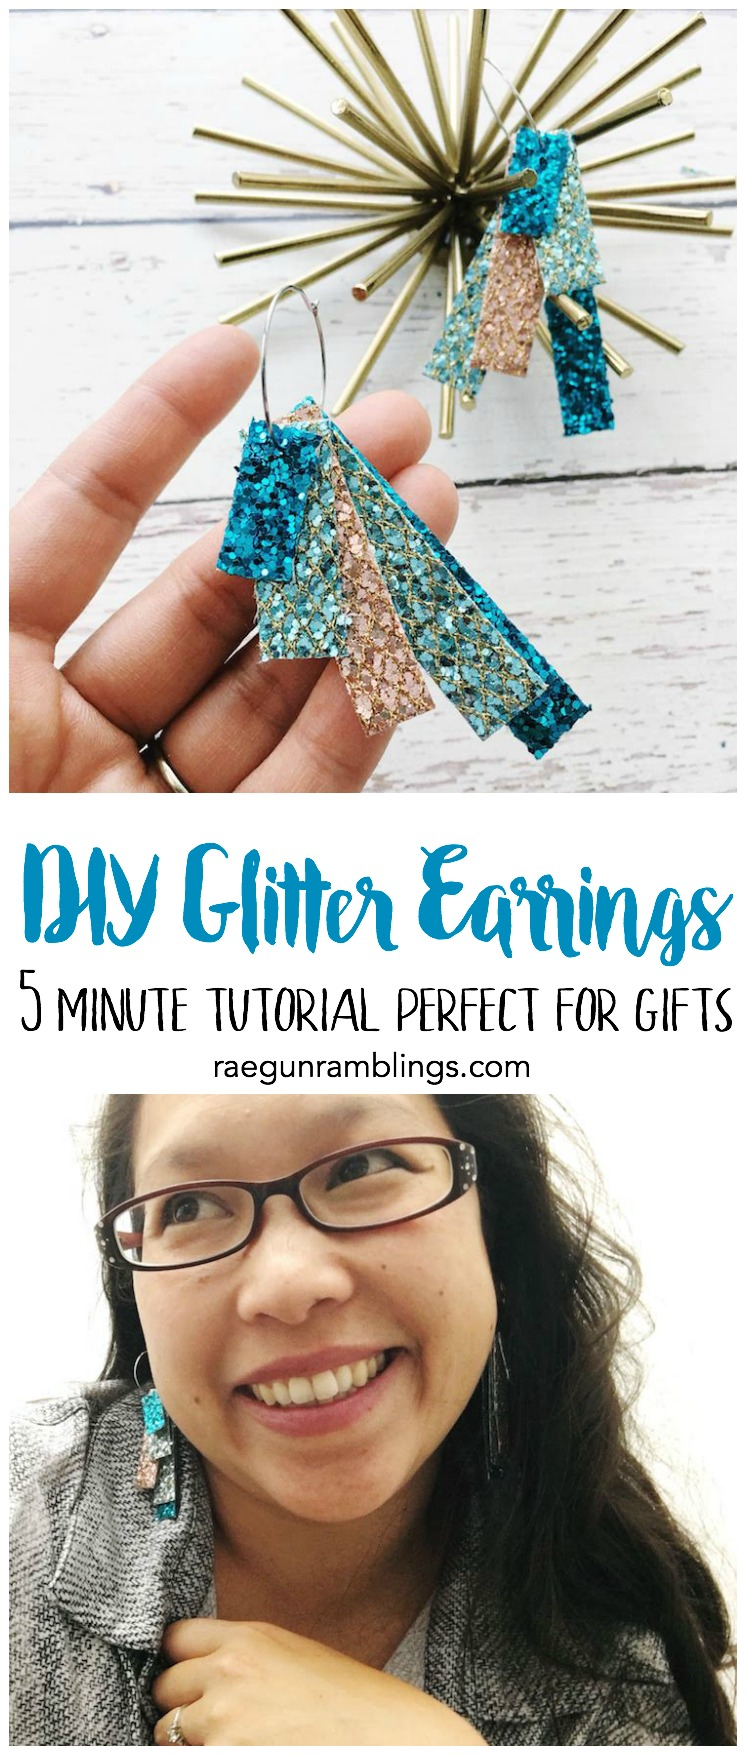 love this idea for quick teacher gifts. Great 5 minute DIY glitter earrings tutorial